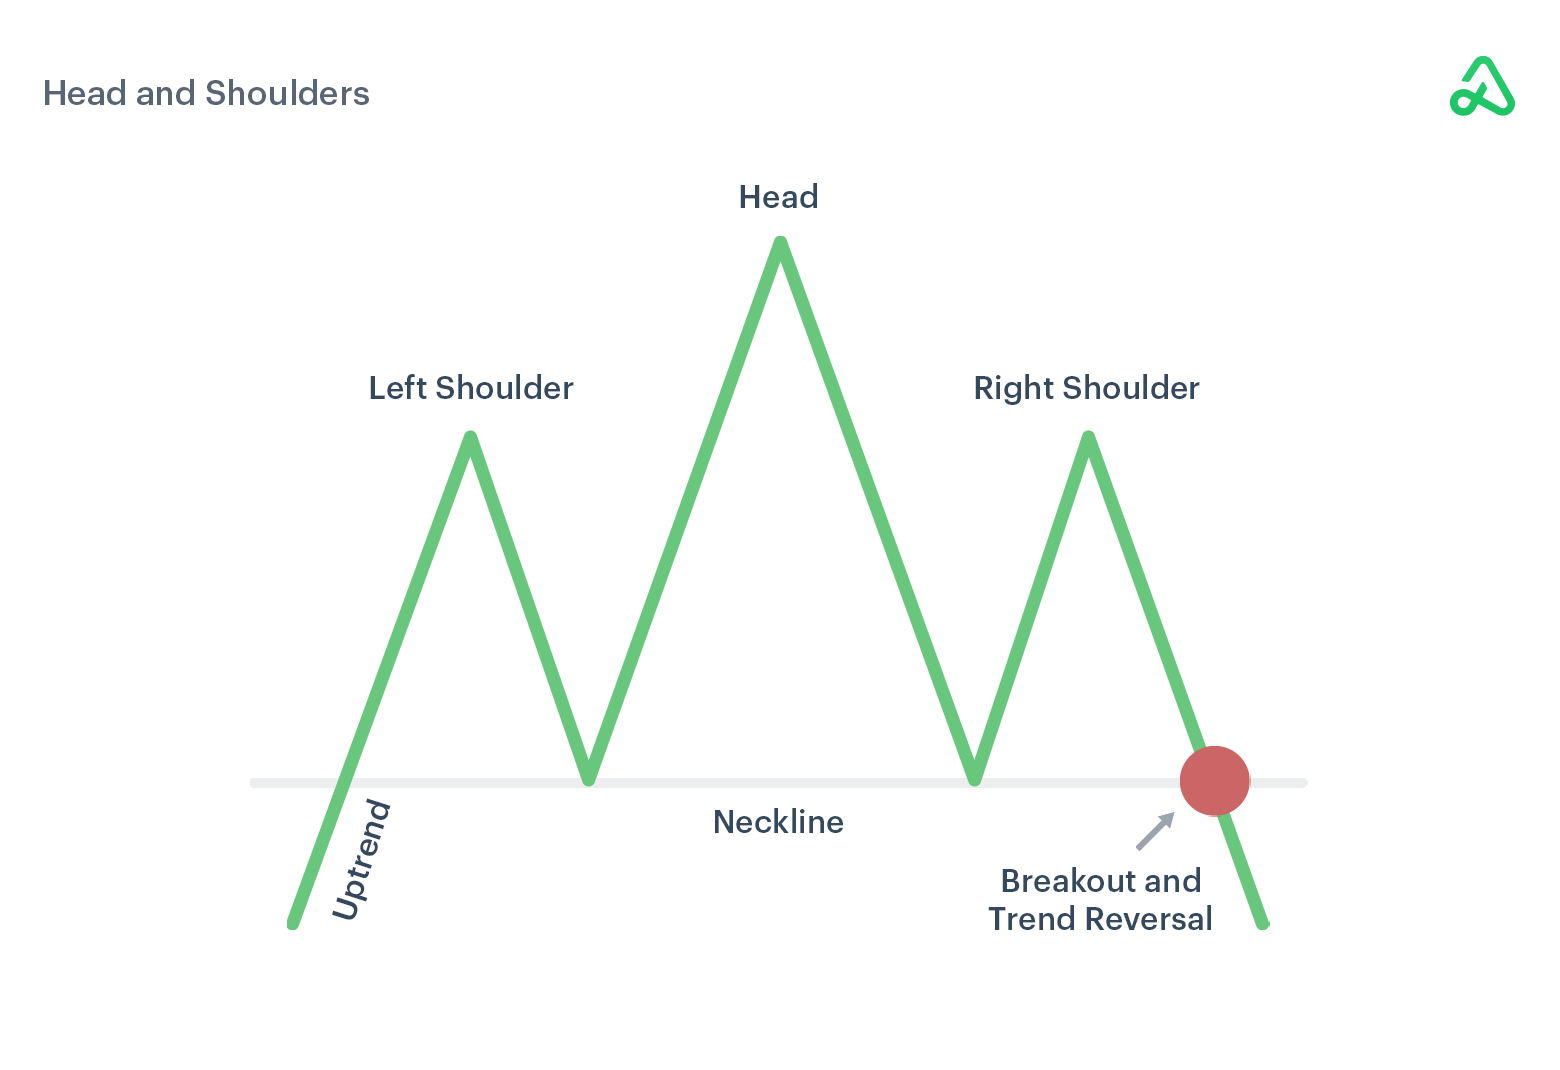 Example of head and shoulders chart pattern